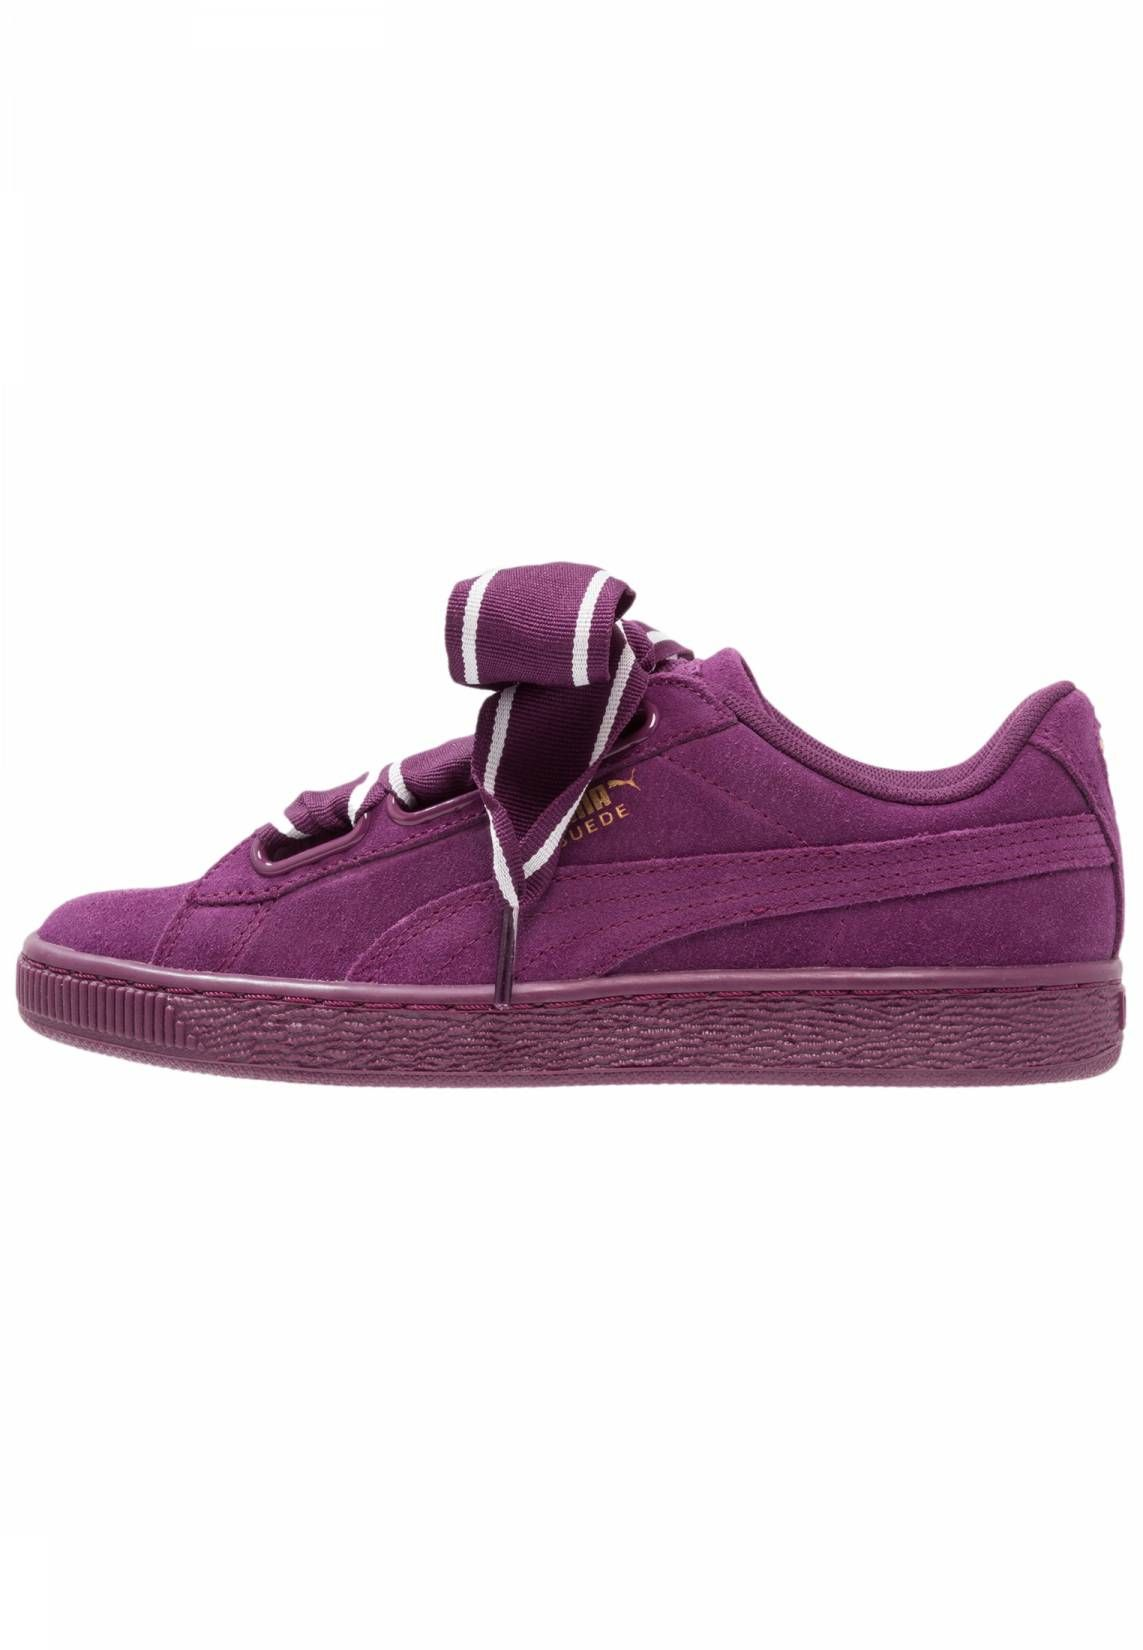 Puma Suede Heart Satin Ii Dark Purple Violet - Chaussures Baskets basses Femme